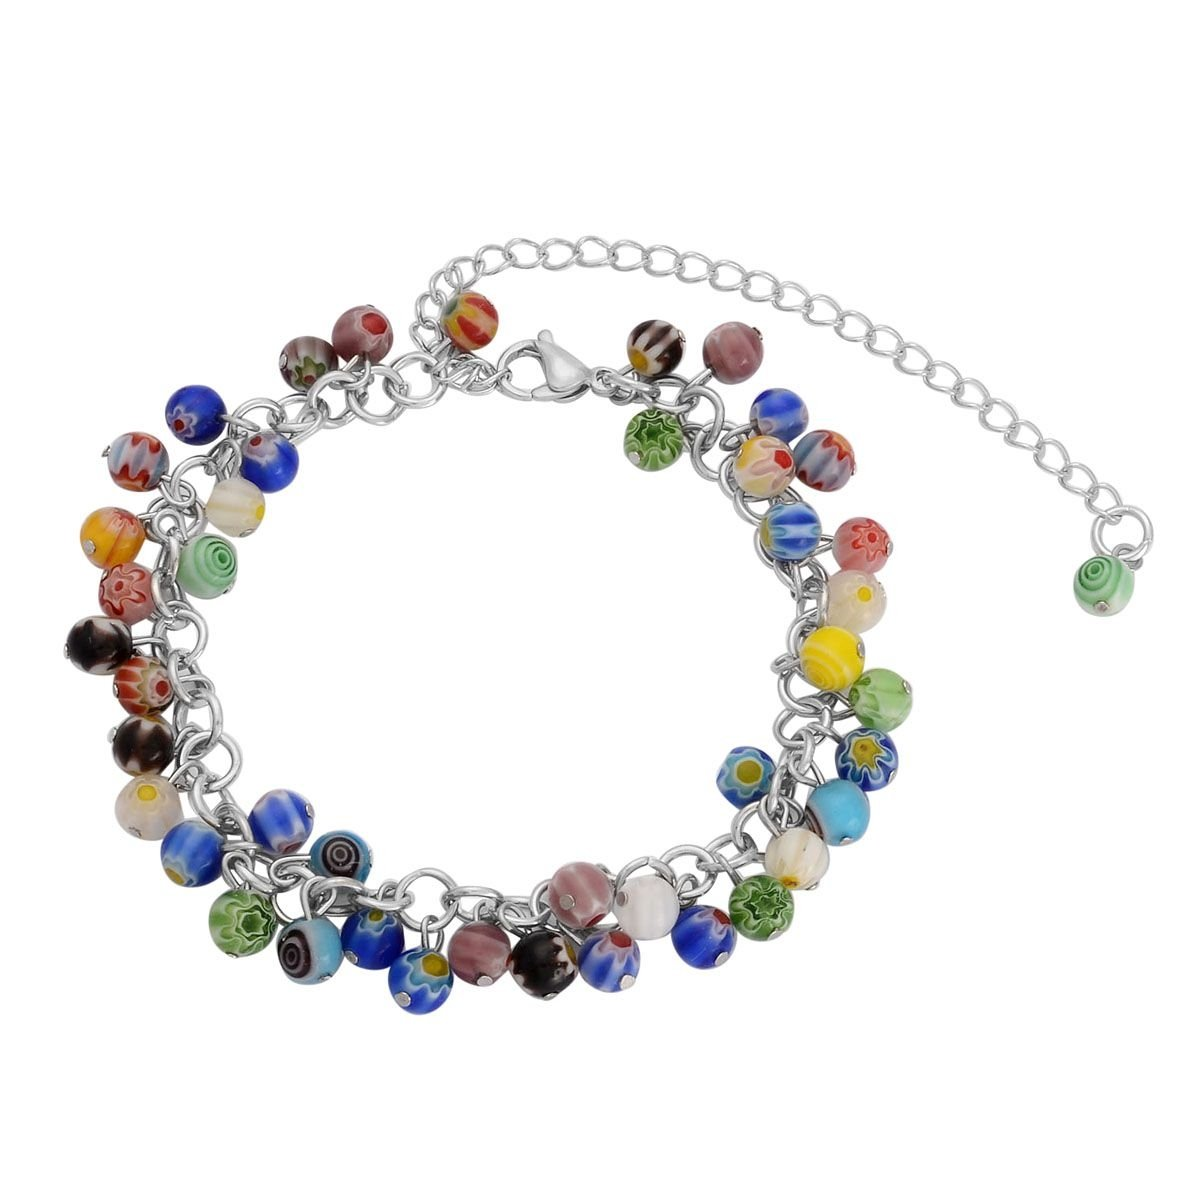 Shop LC Stainless Steel Round, Beads Glass Anklet for Women 9''